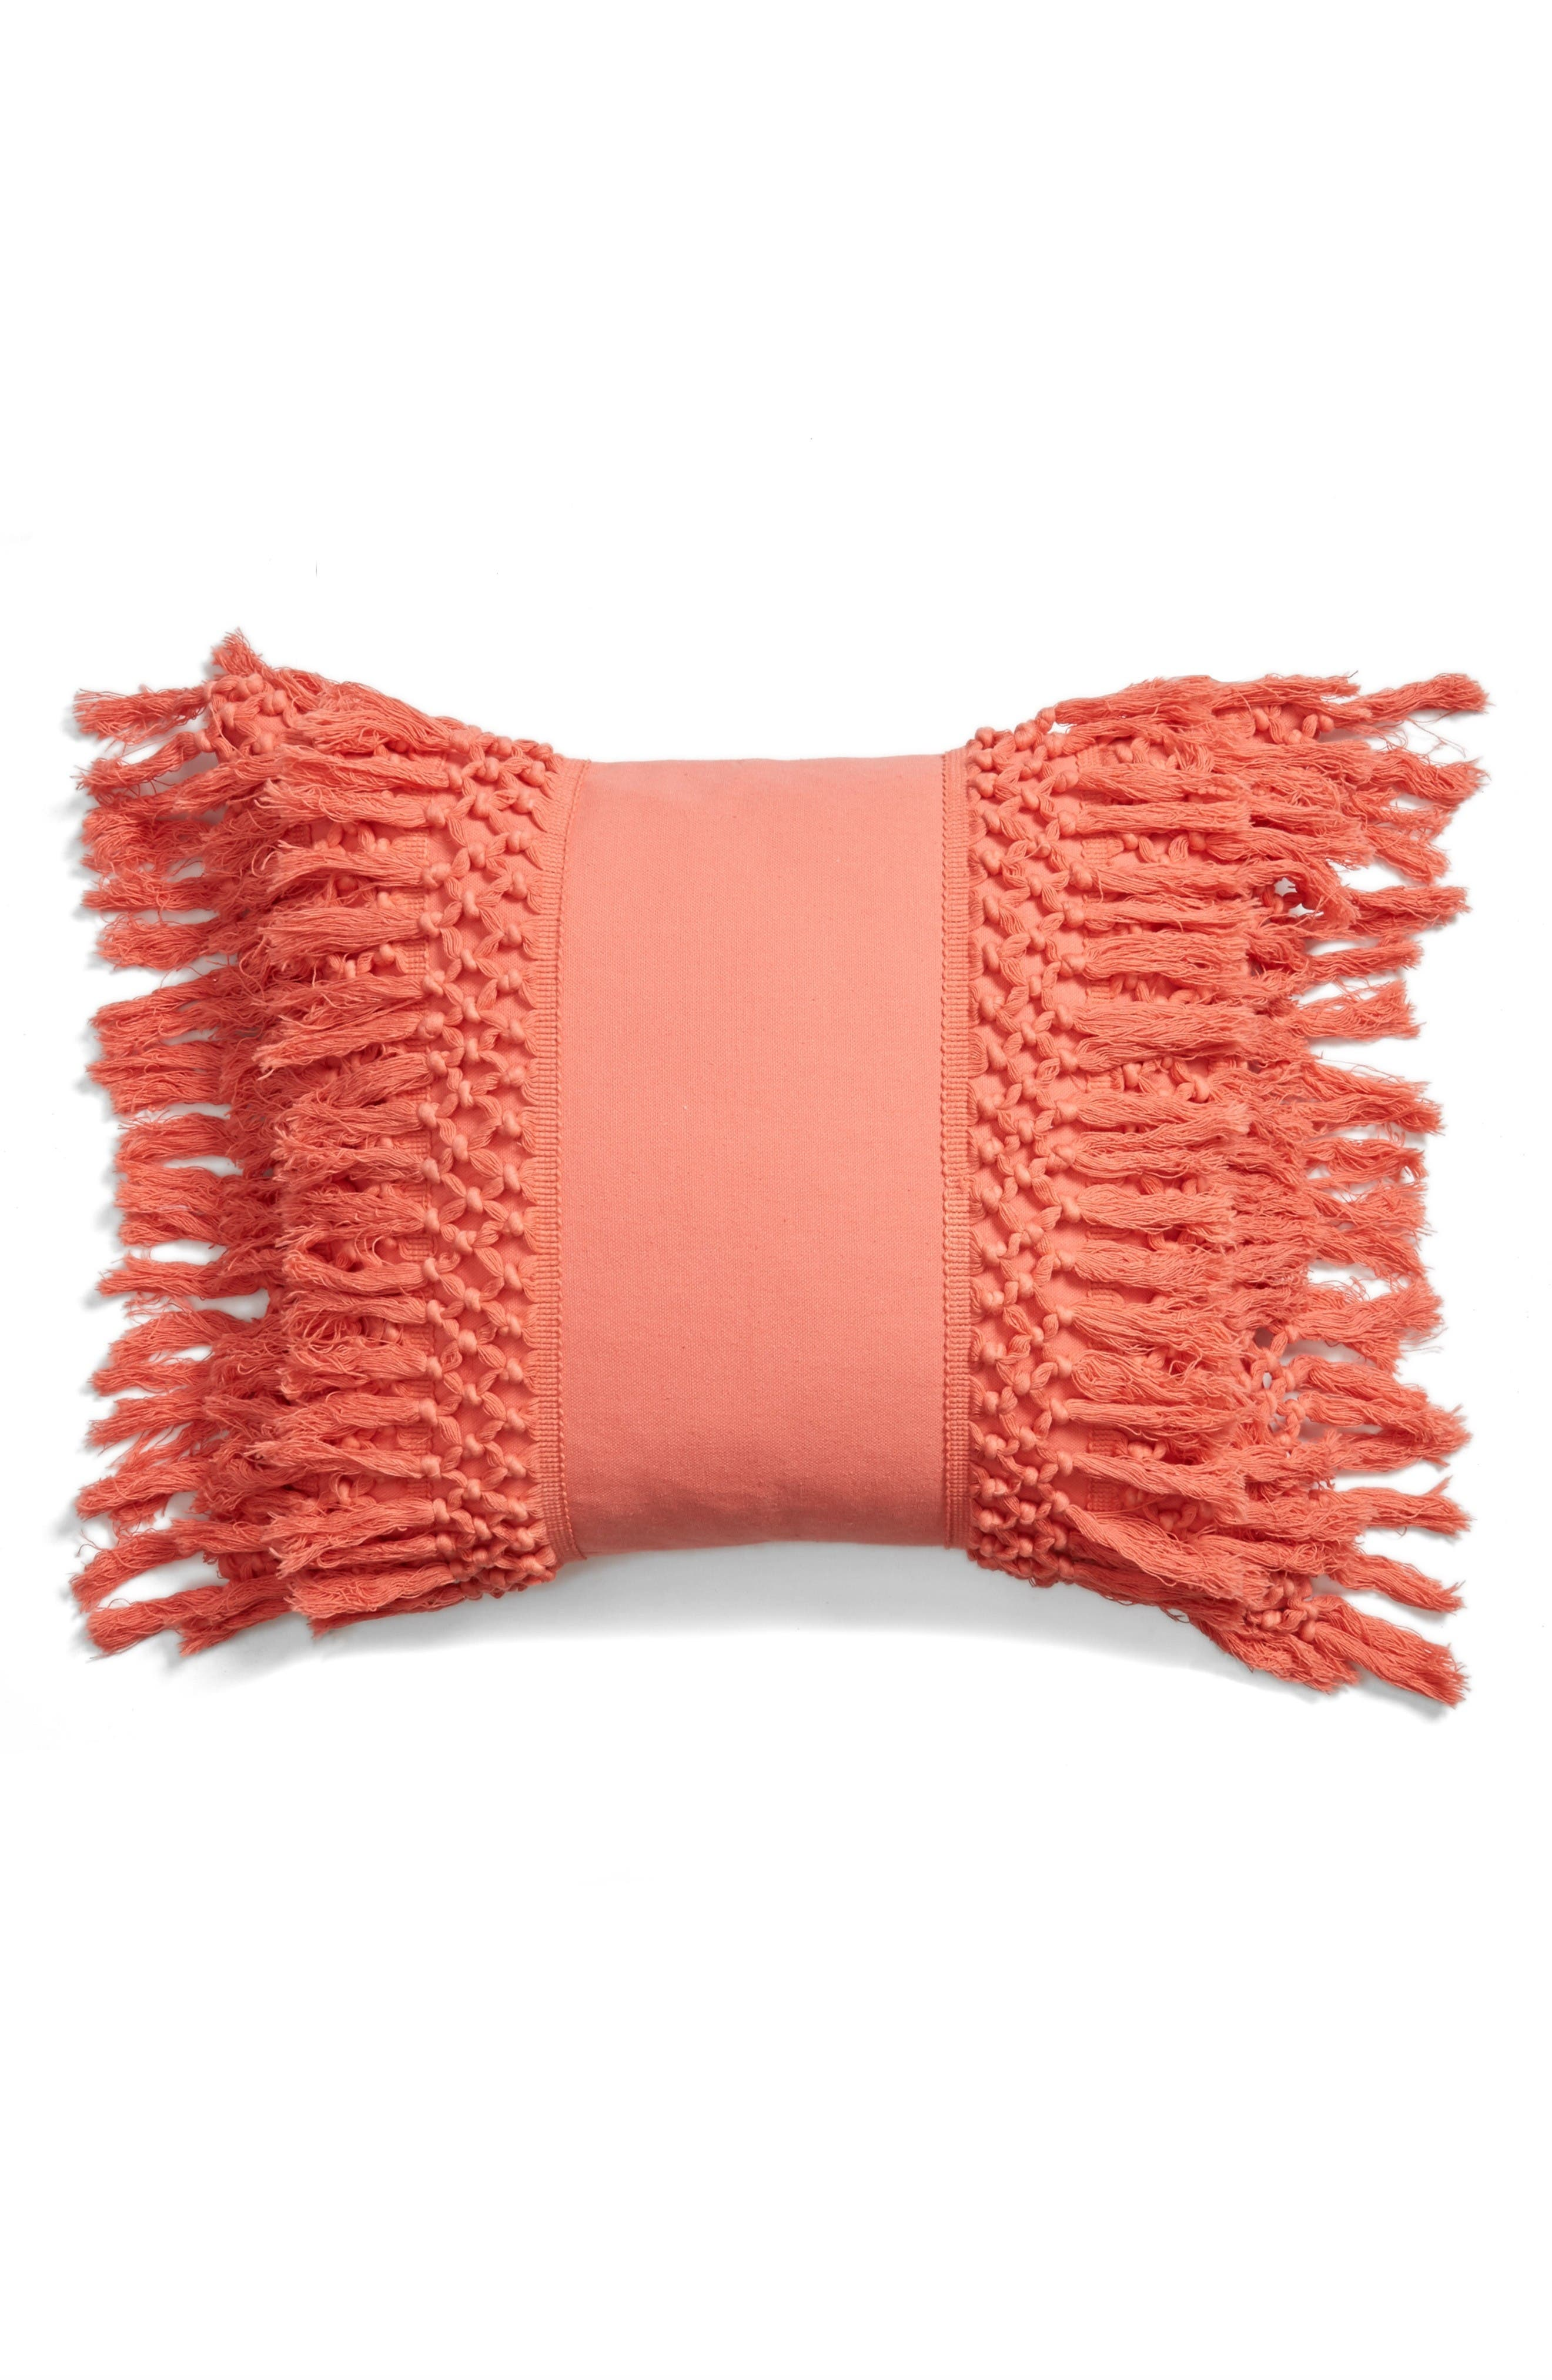 Alternate Image 1 Selected - Levtex Fringe Pillow